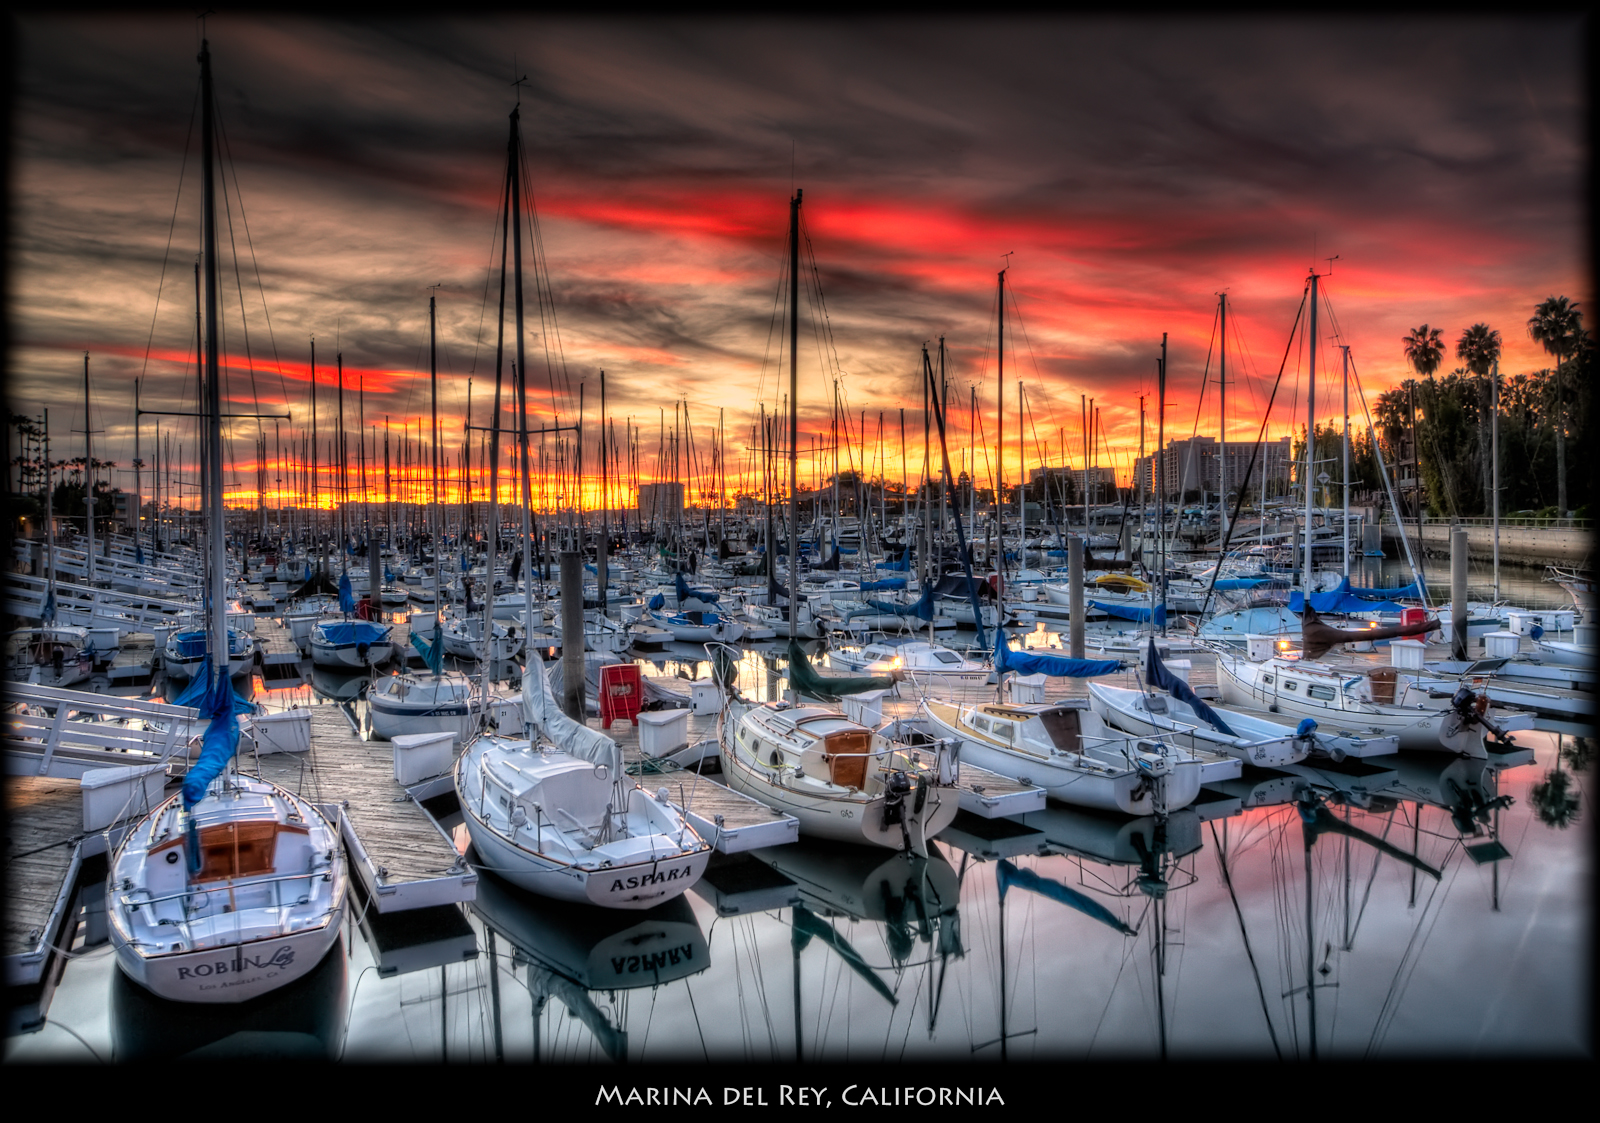 This is the time of year for nice sunsets in Los Angeles. I finally got out with my camera an HDR sequence of this sunset. I wanted the boats to be clearly visible, but still have the sunset colors. I tried using f18, but even though there was no wind, the boats do move quite a bit, and Photomatix did a poor job of blending. I discovered that if you tell Photomatix to adjust for moving objects the quality is much lower than if you just ask for adjusting for background movement. So, for this shot I used the f5.6, and didn't get the nice starburst for the lights that had come on. ISO 100, 16mm, f5.6, (1/25, 1/6, 0.6 secs) Used Photomatix details enhancer to produce an image with very few shadows (low smoothness). In Nik added Tonal Contrast on the boats, Pro Contrast, a Coffee Graduated Filter with small opacity. Used Viveza to add a bit of brightness and contrast to the reds because I remembered being struck by how bright the reds were when I was out there.